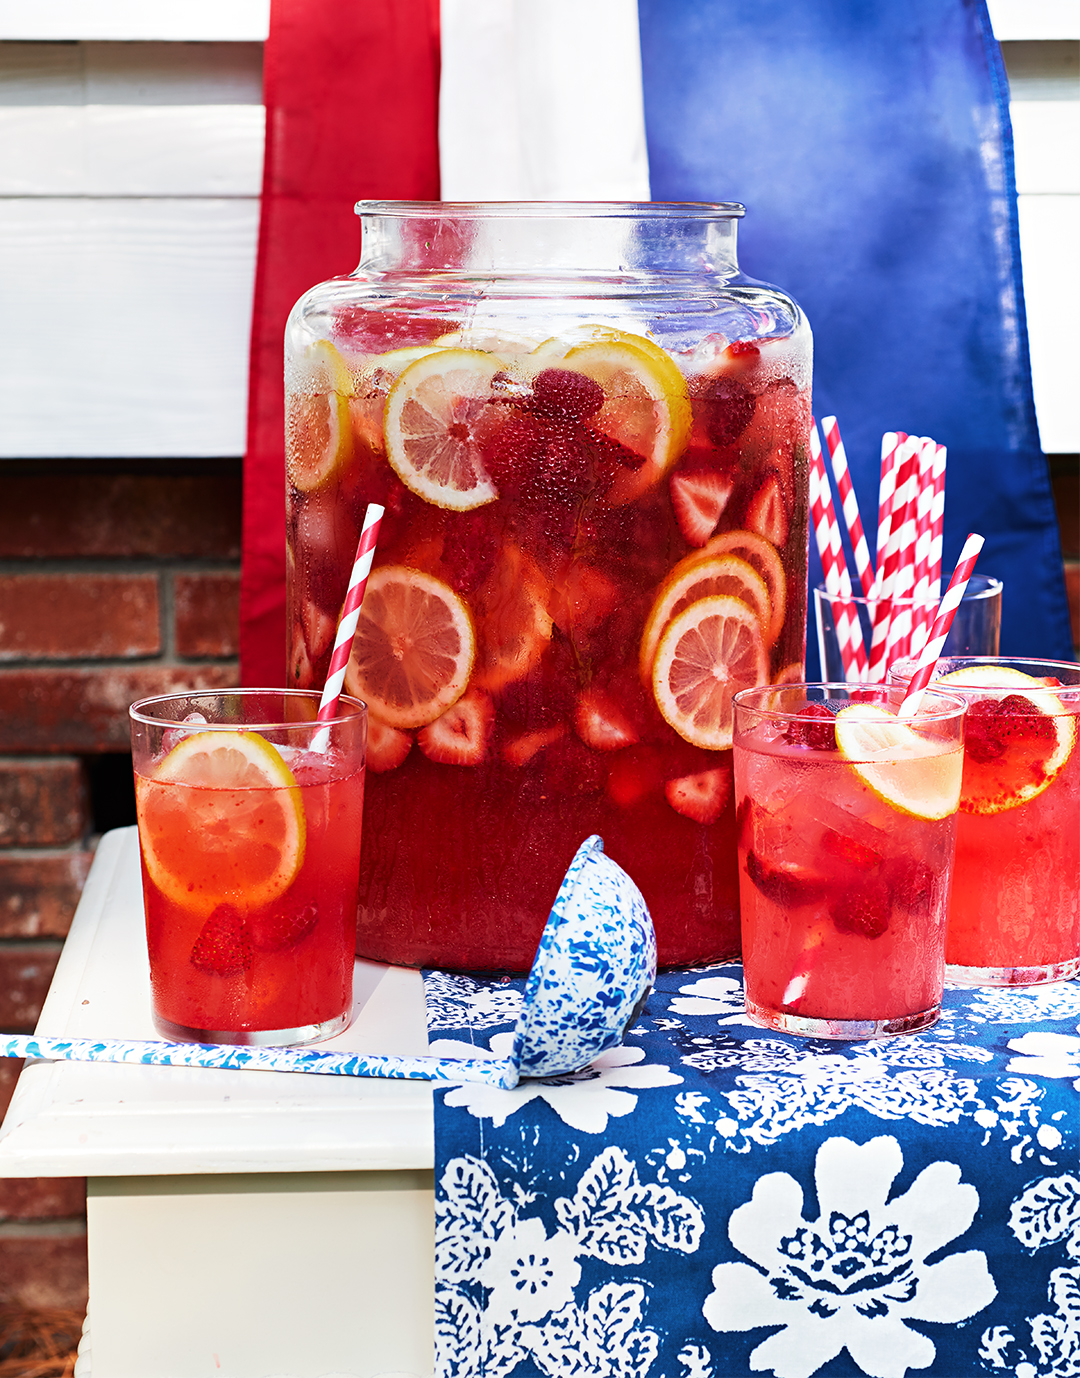 Berry Lemonade recipe picnic tumblers glass spoon patriotic